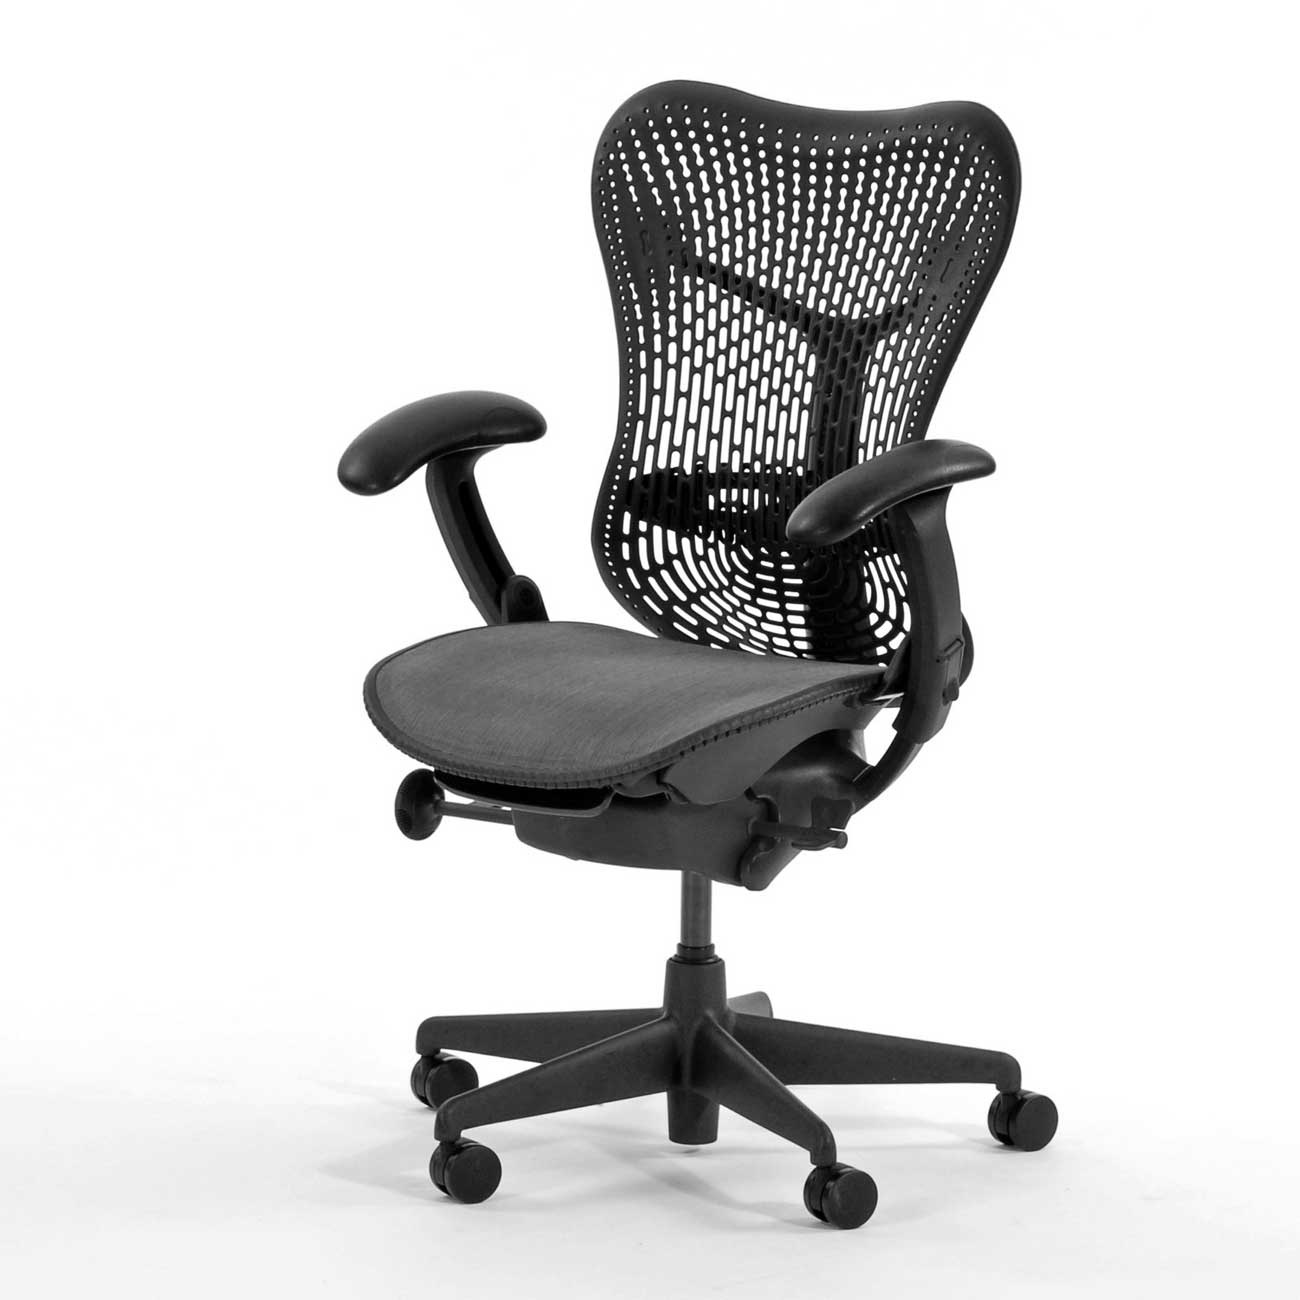 ergonomic office chair herman miller  Office Furniture